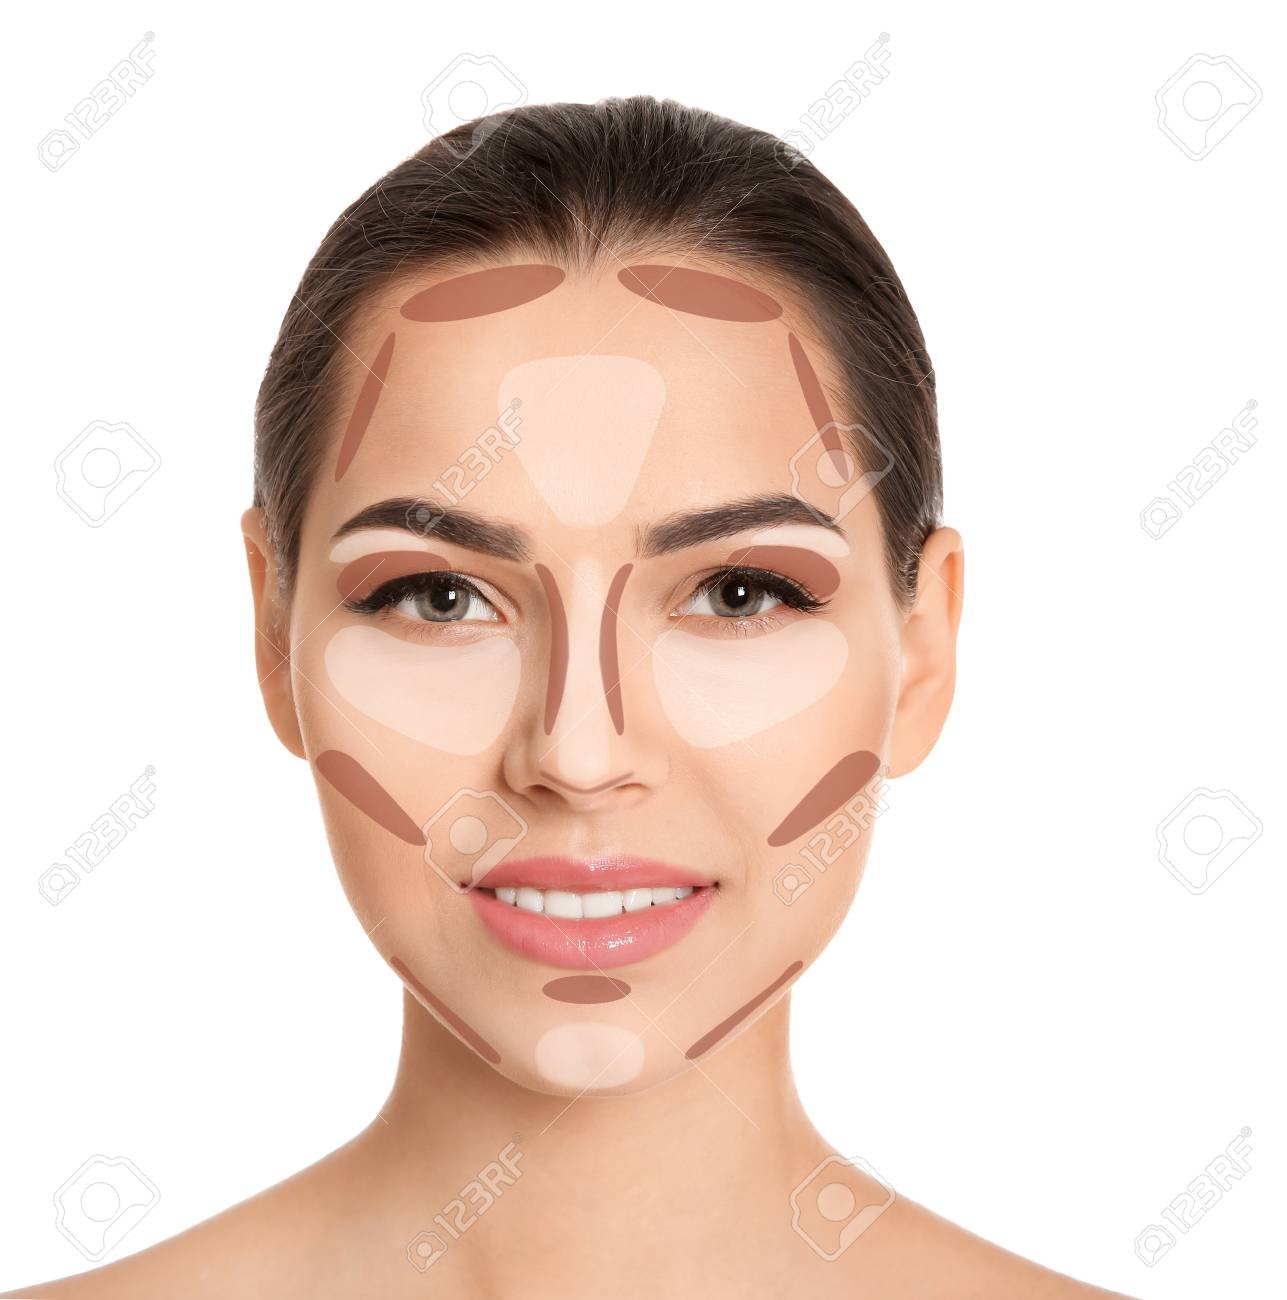 Woman With Facial Makeup Contouring Map On White Background Stock Photo Picture And Royalty Free Image Image 107161612